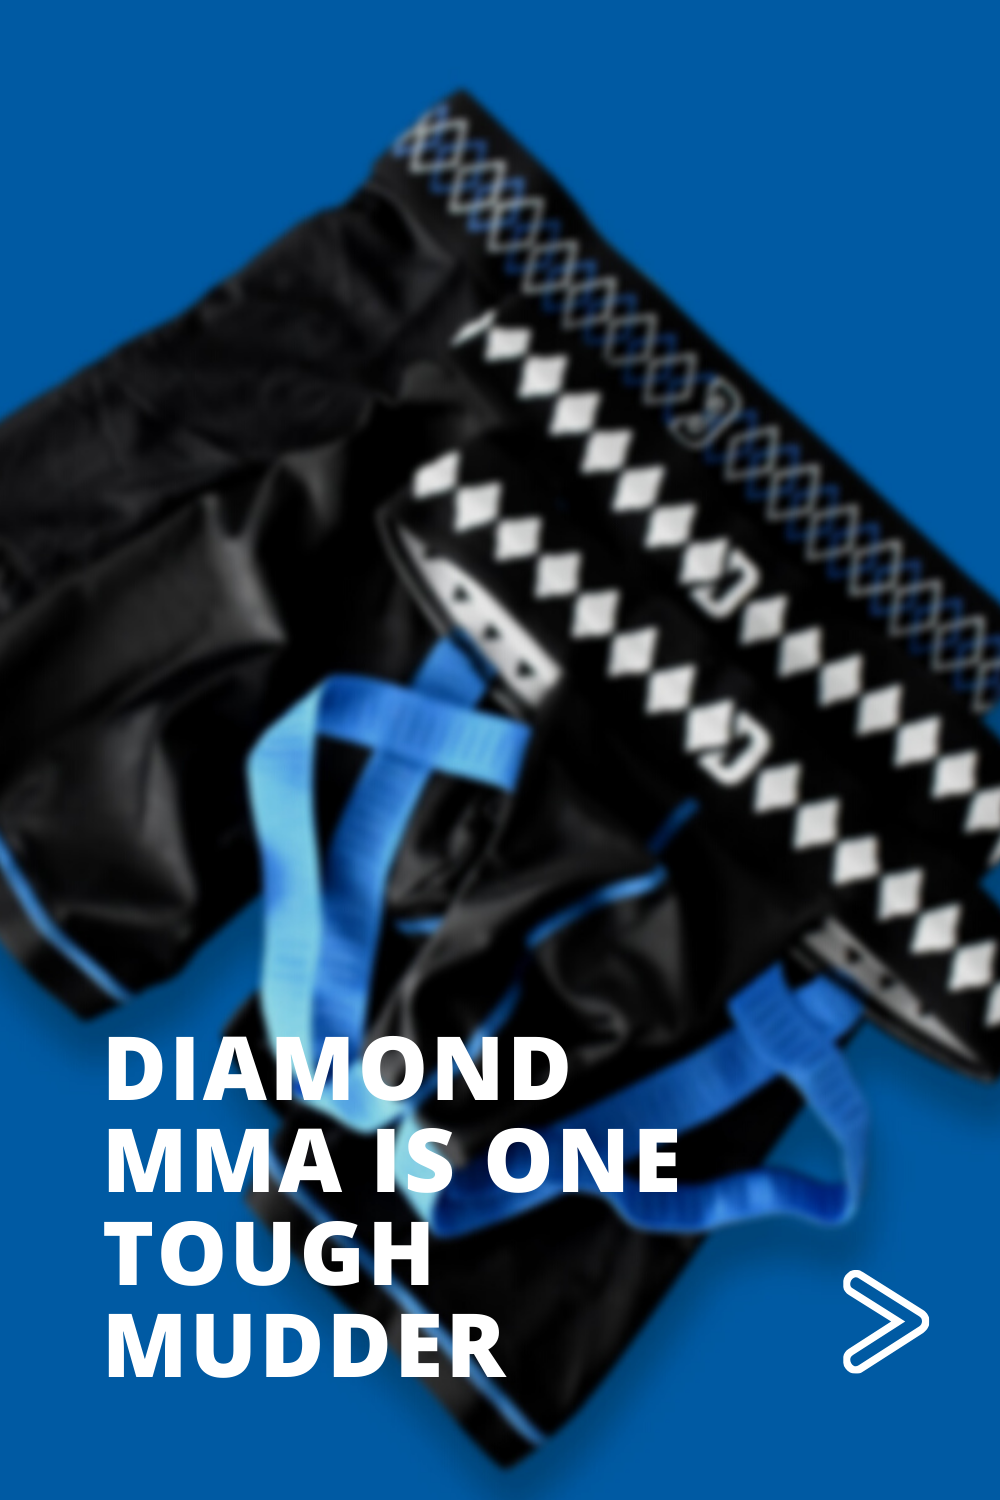 Diamond MMA is One Tough Mudder